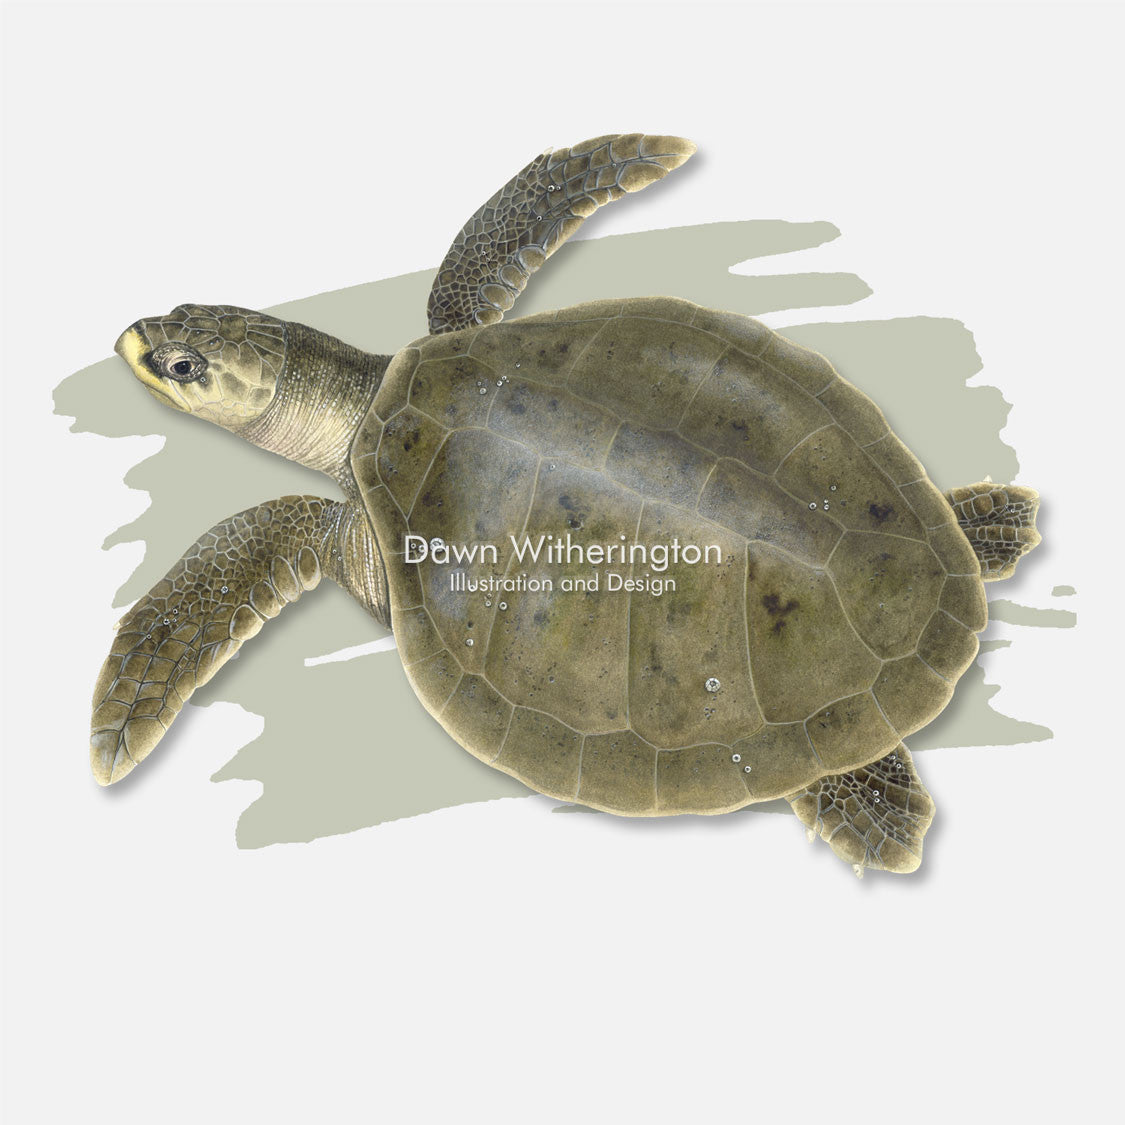 This beautiful illustration is of a Kemp's ridley sea turtle, Lepidochelys kempii, over a swash graphic.